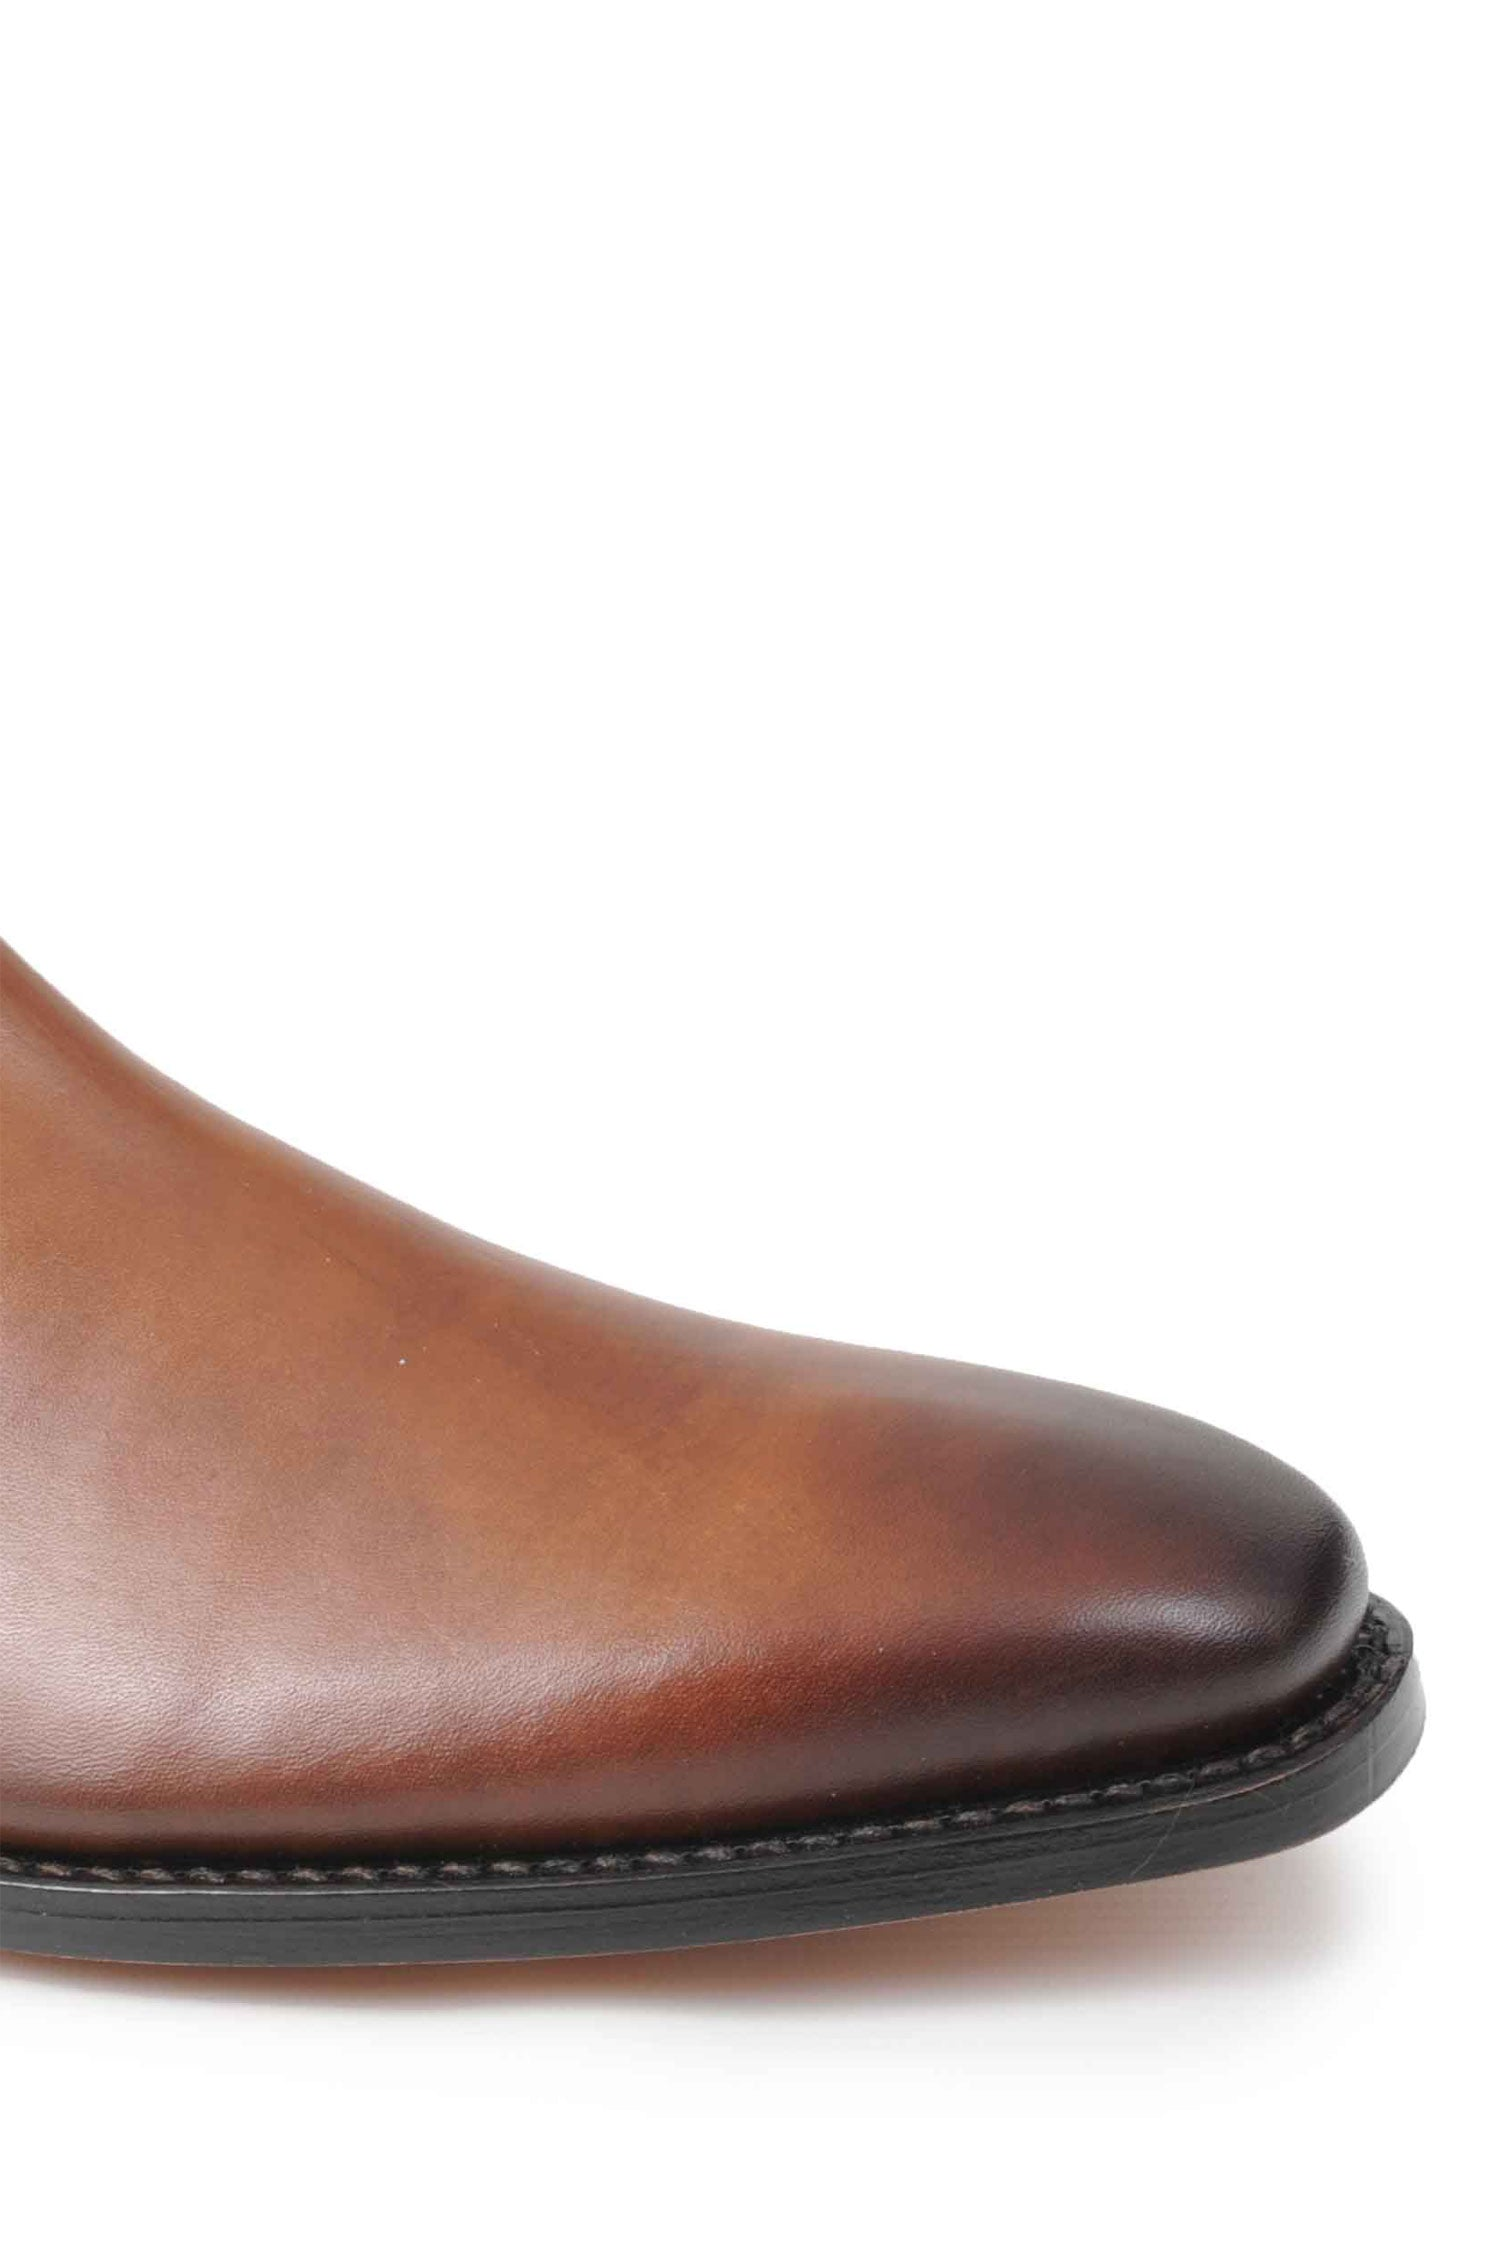 Squared toe Leather chelsea boot